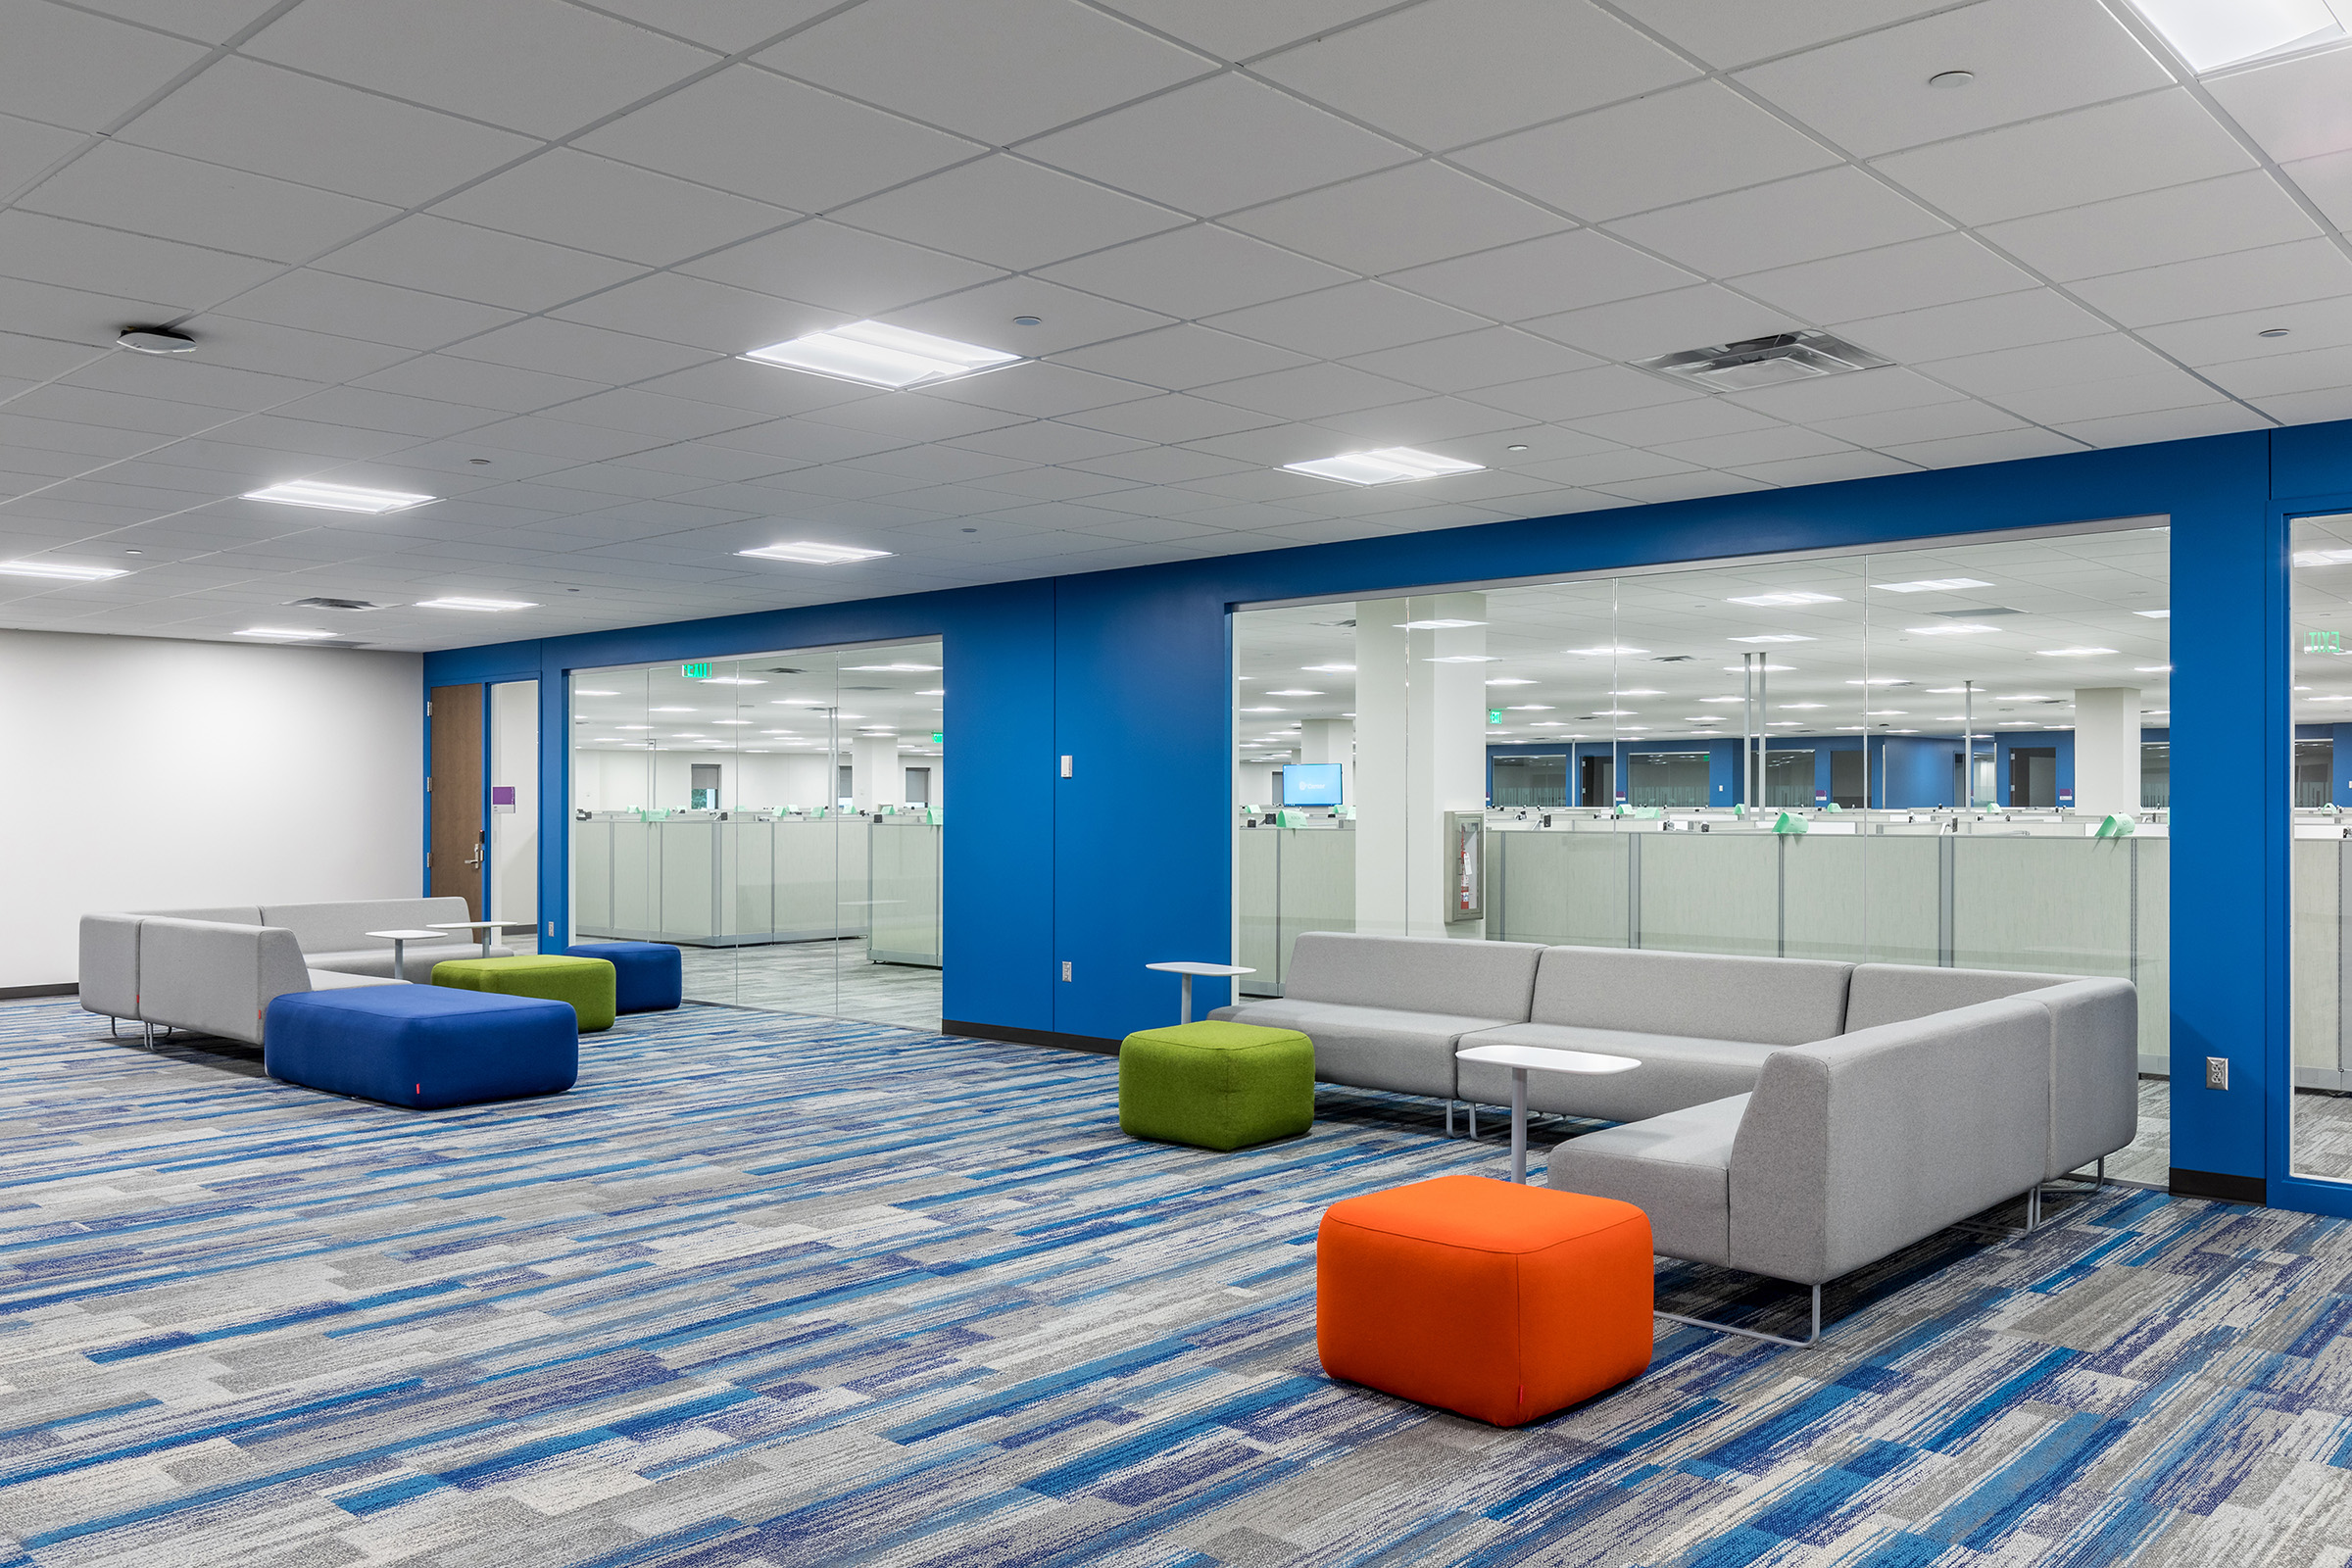 Cerner Office Building - Kelly Construction Group Kansas City